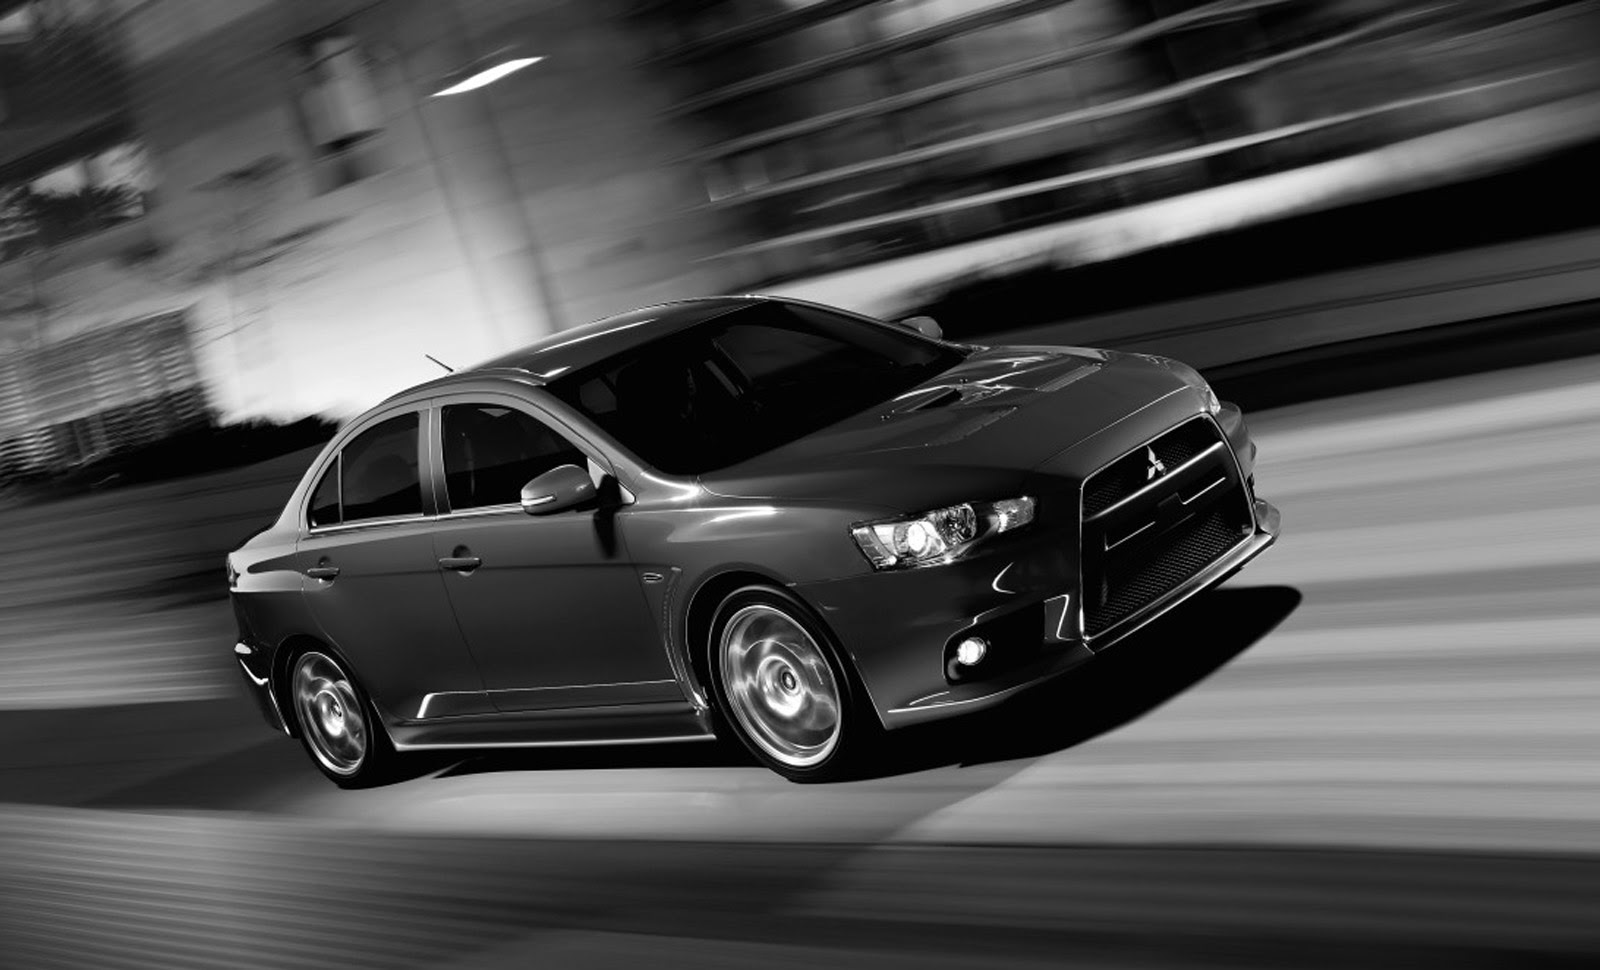 Mitsubishi Lancer Evolution Bows Out With 2015 Model